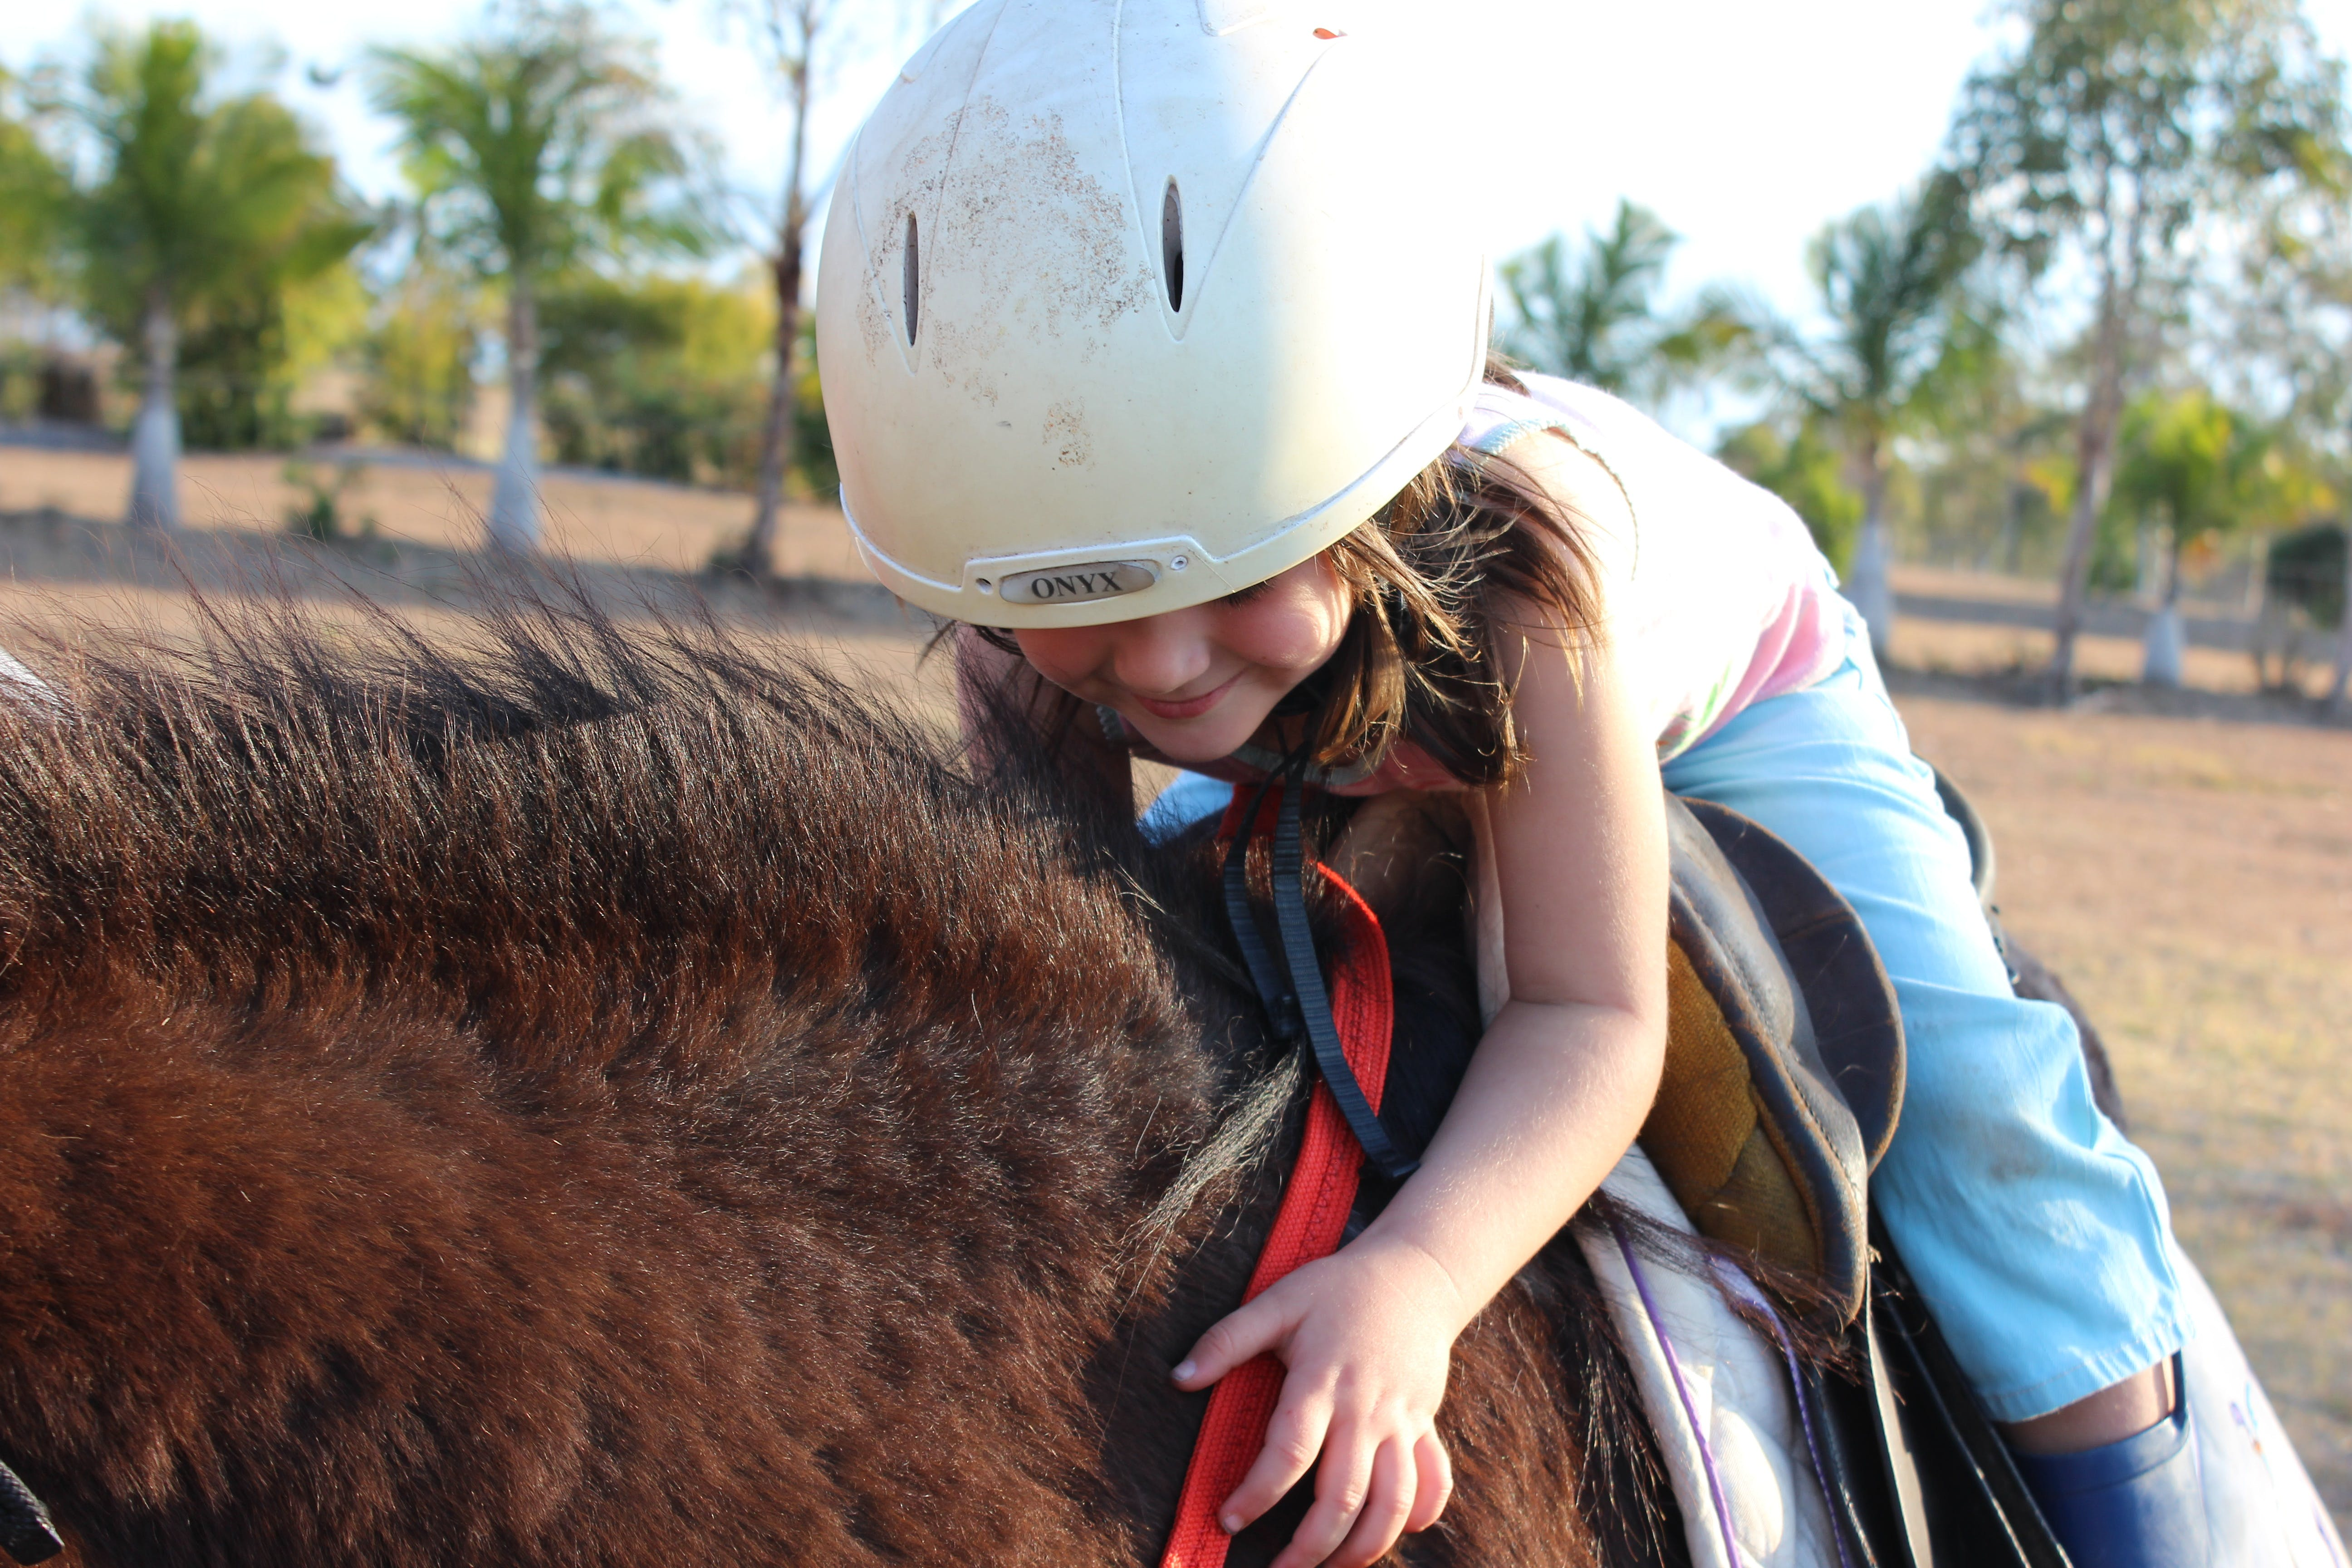 Girl in Blue Pants Riding Brown Animal